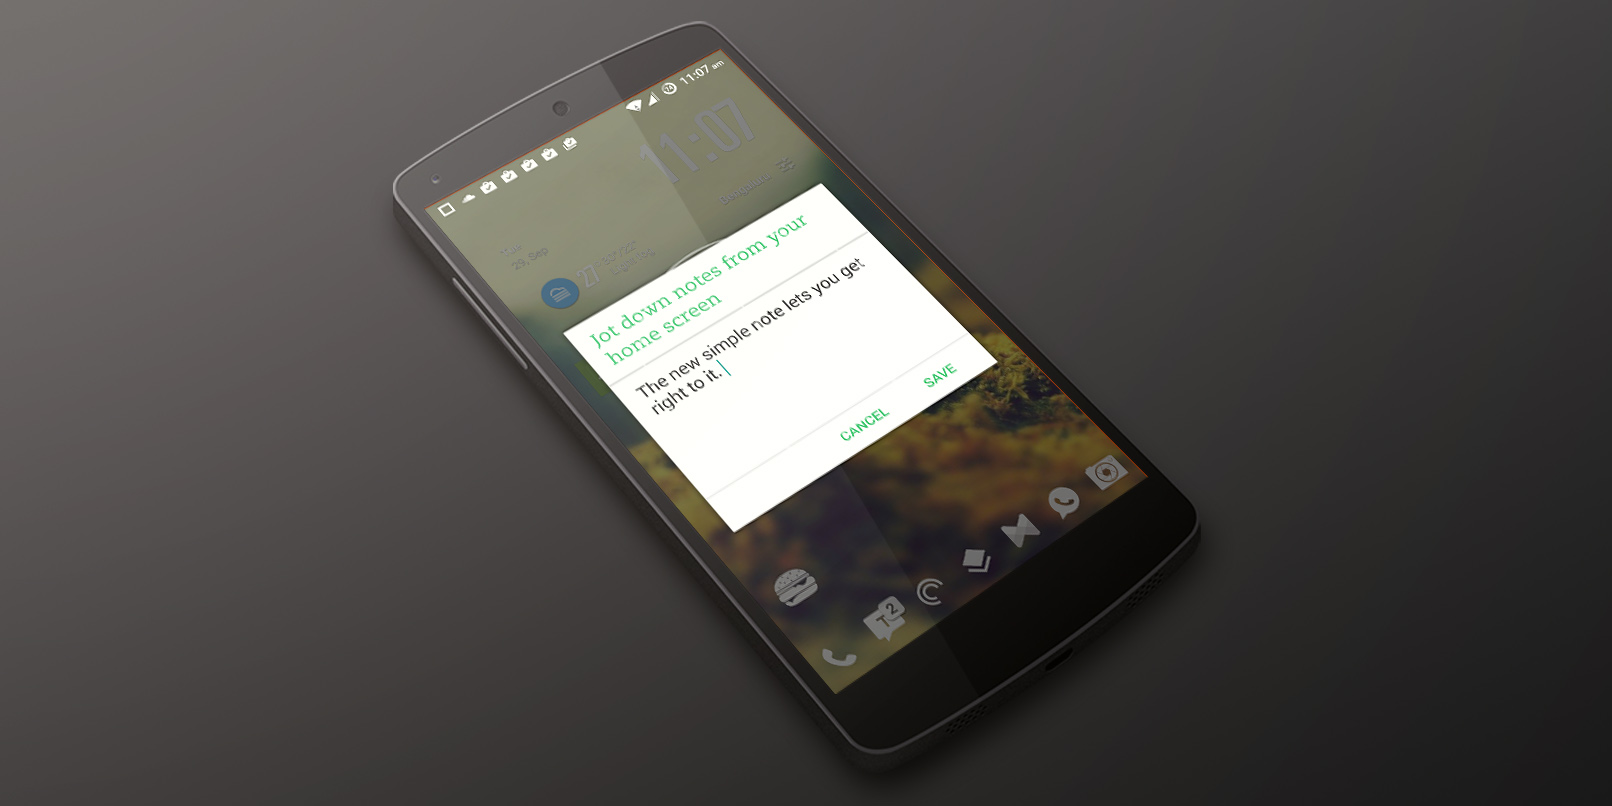 Evernote for Android has a new widget for faster note-taking